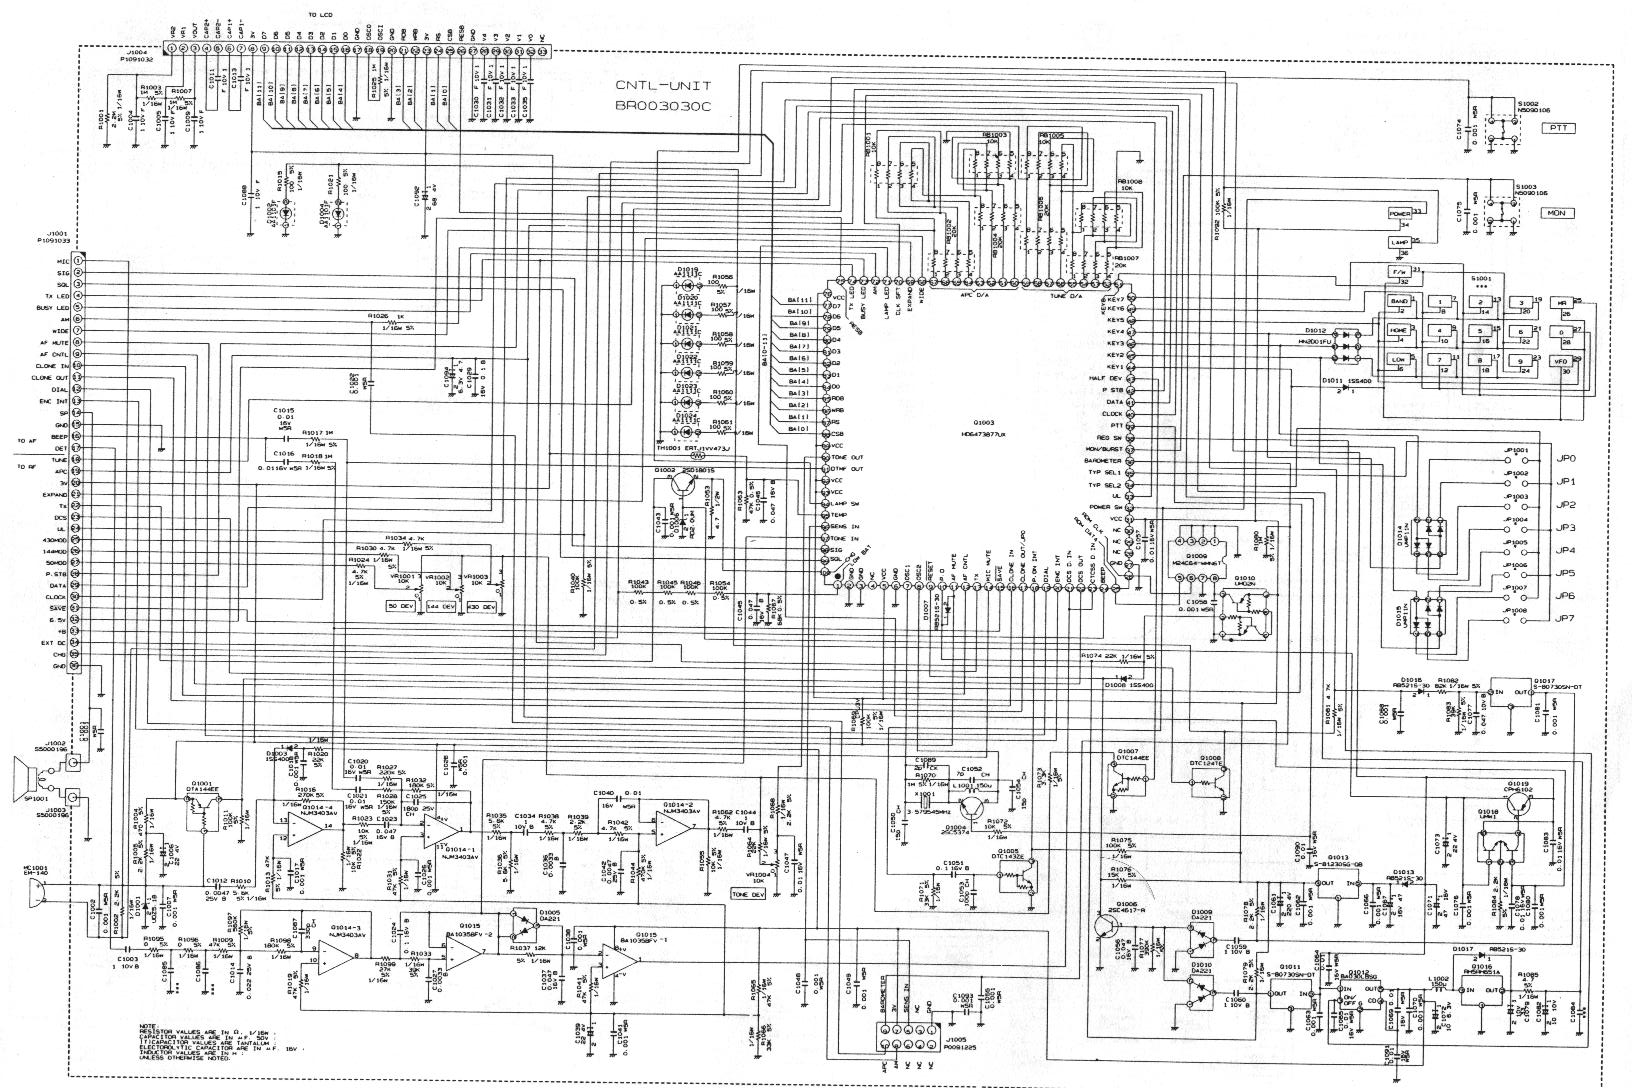 YAESU VX 5 Schematic b index of pub radio_manuals yaesu Yaesu G-450A at bayanpartner.co